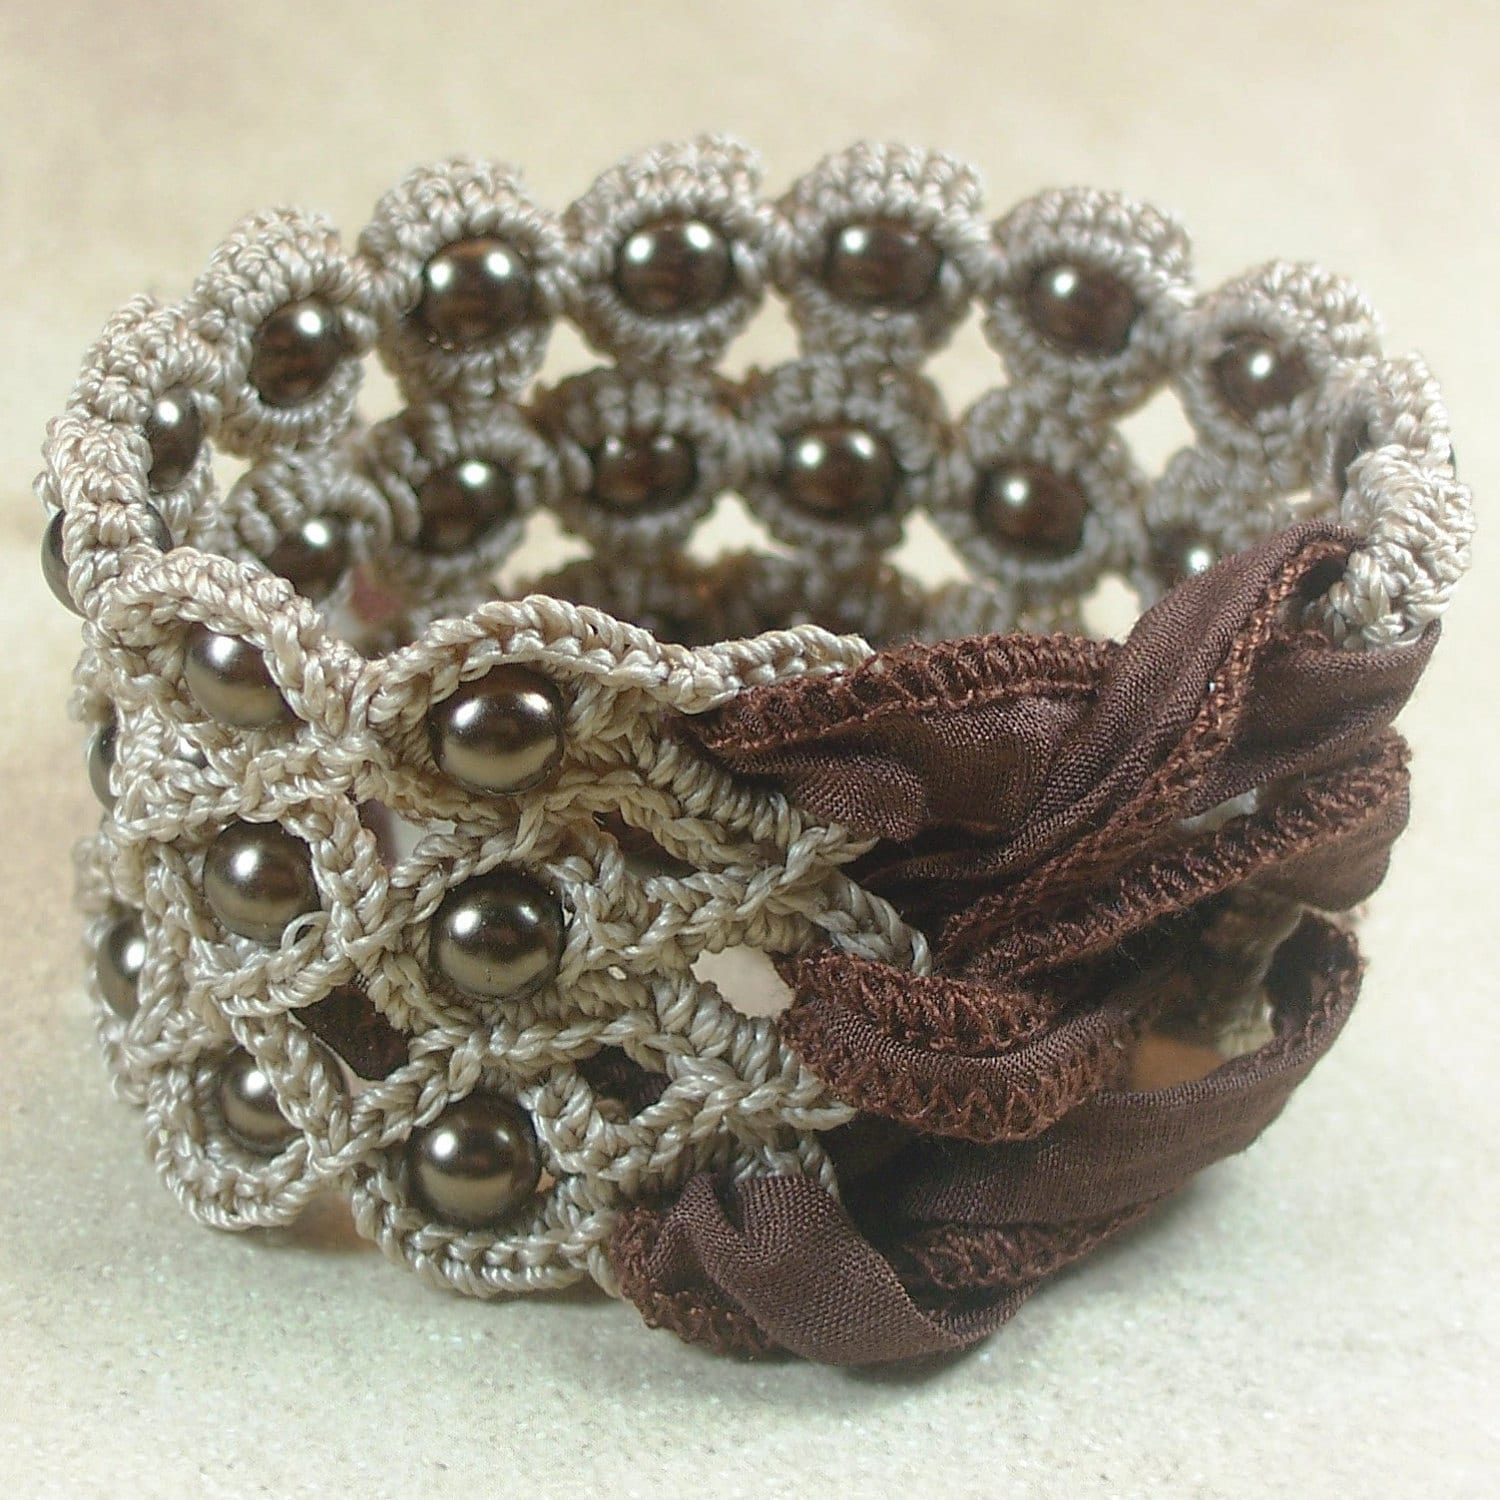 Crochet Jewelry, Bohemian Bracelet or Cuff, Natural brown shades - adjustable